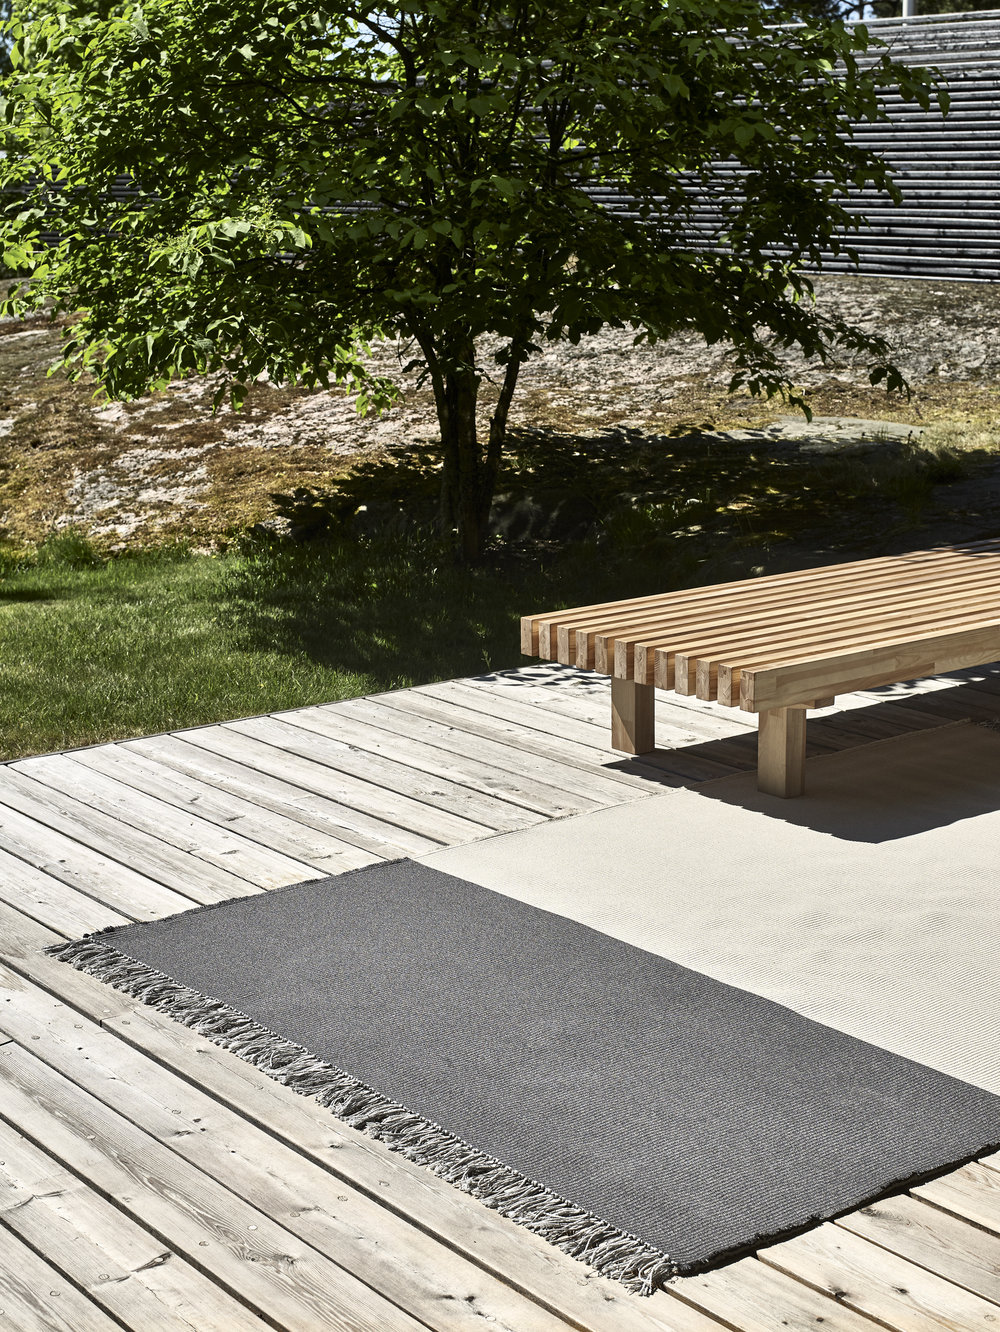 The  Woodnotes outdoor carpet  has a soft feel and is transpiring therefore ideal for leisure living. Outdoor Pond carpet col.graphite-pearl grey.